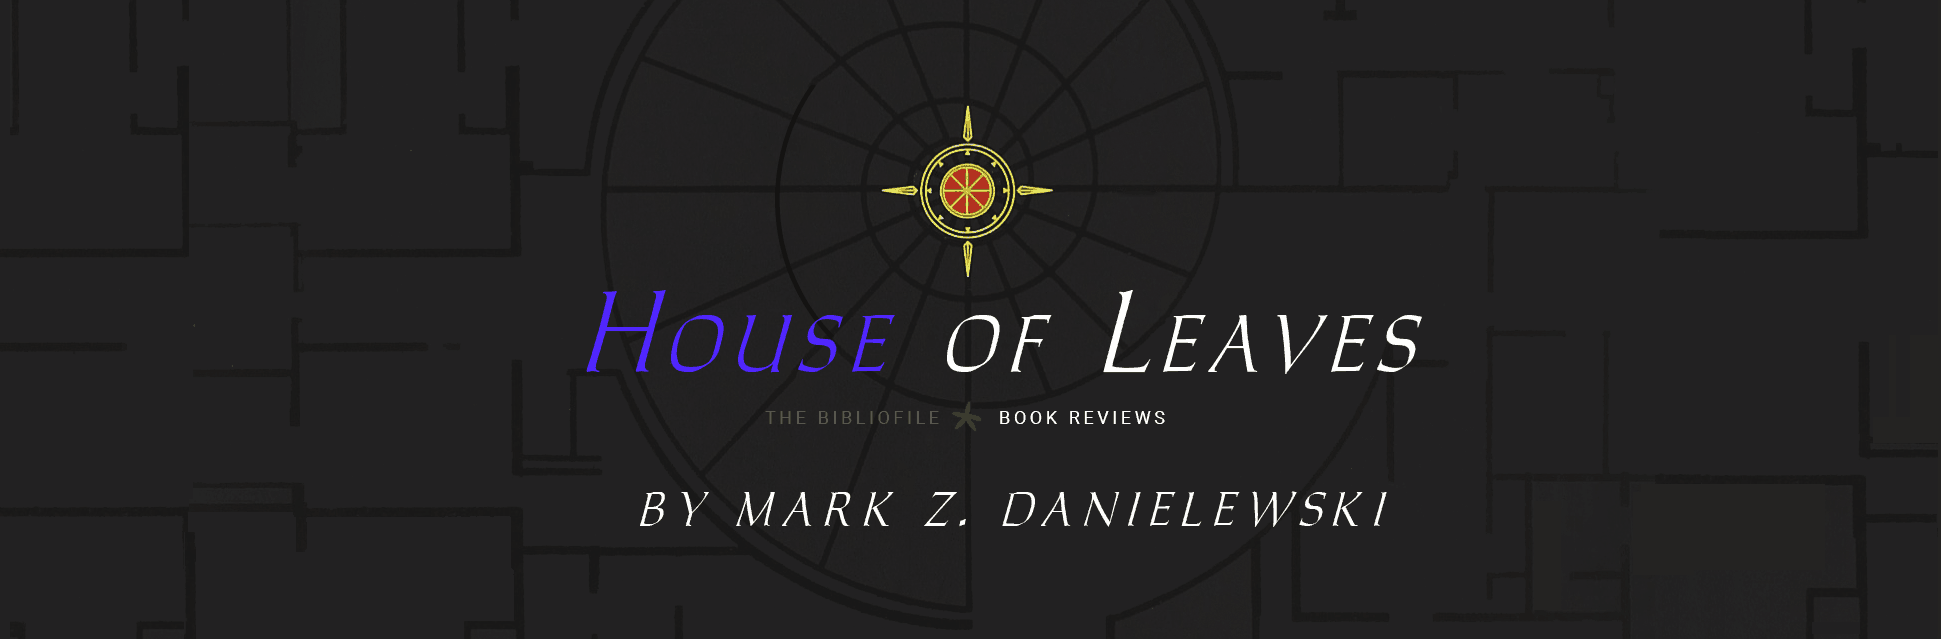 house of leaves by mark danielewski